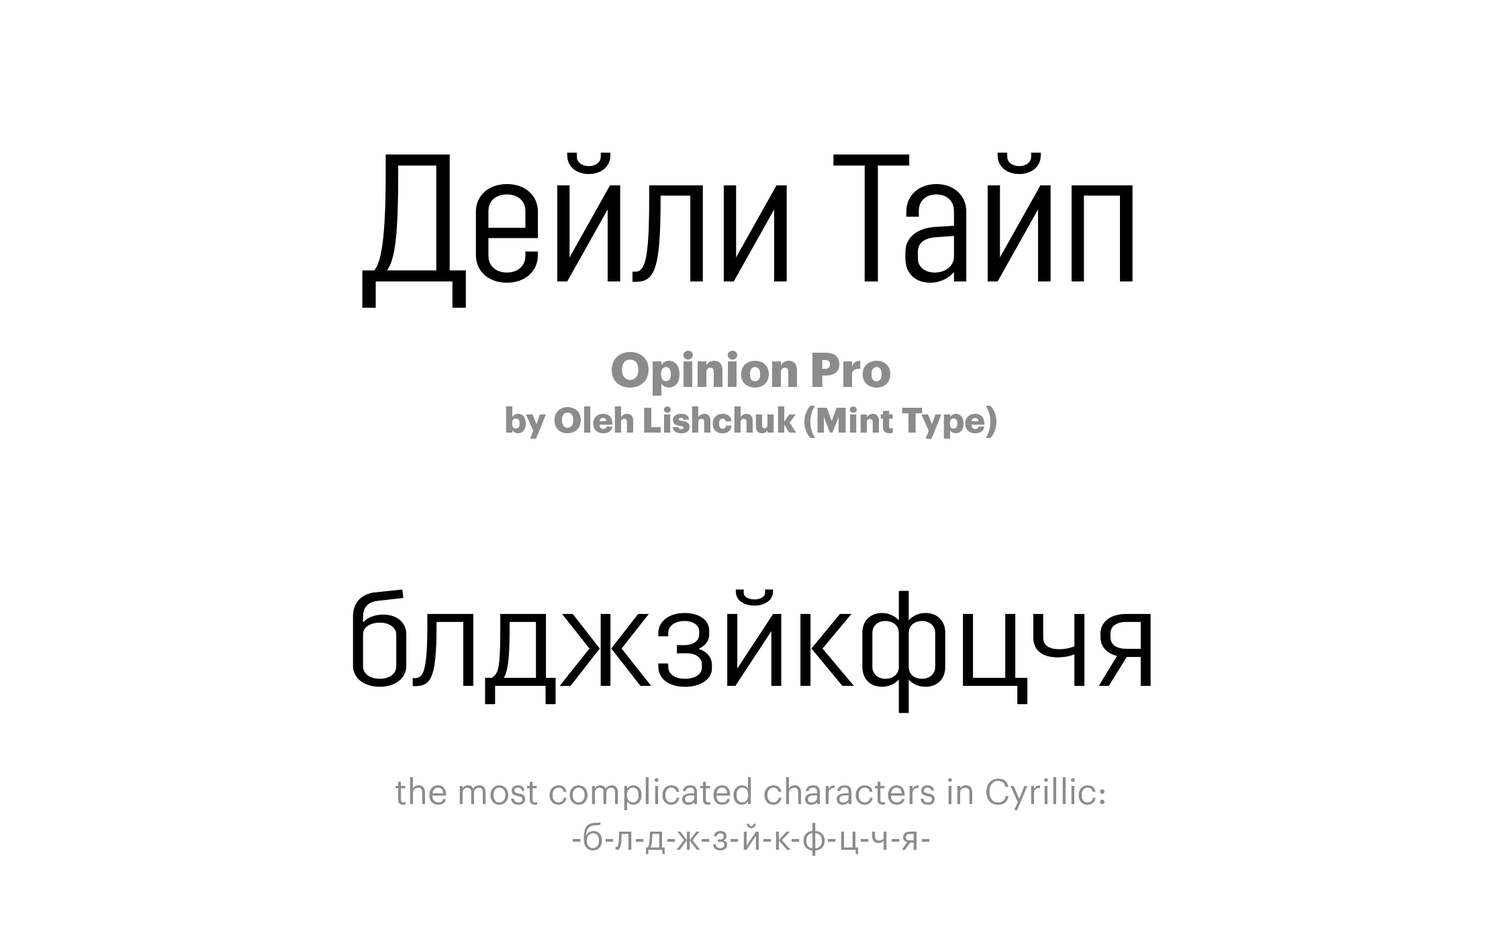 Opinion-Pro-by-Oleh-Lishchuk-(Mint-Type)